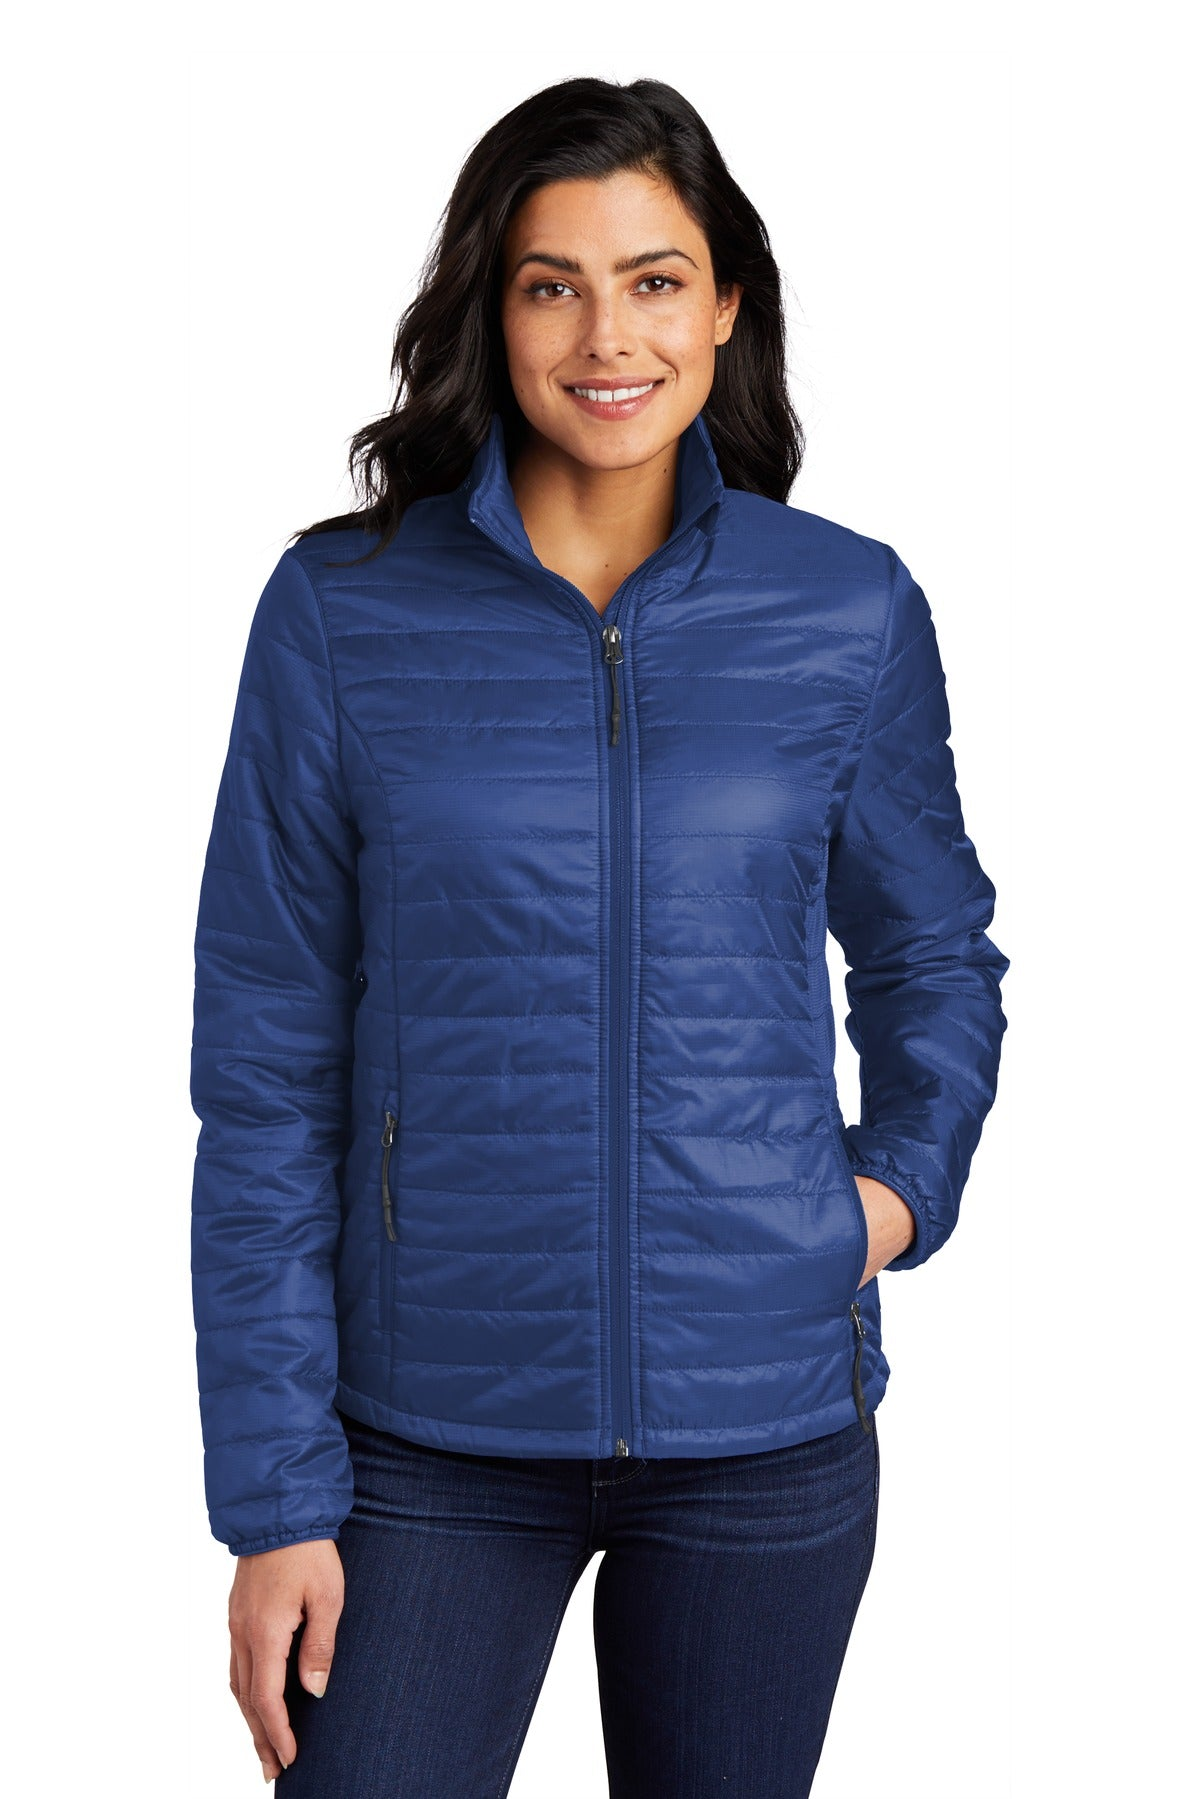 Port Authority Ladies Packable Puffy Jacket L850